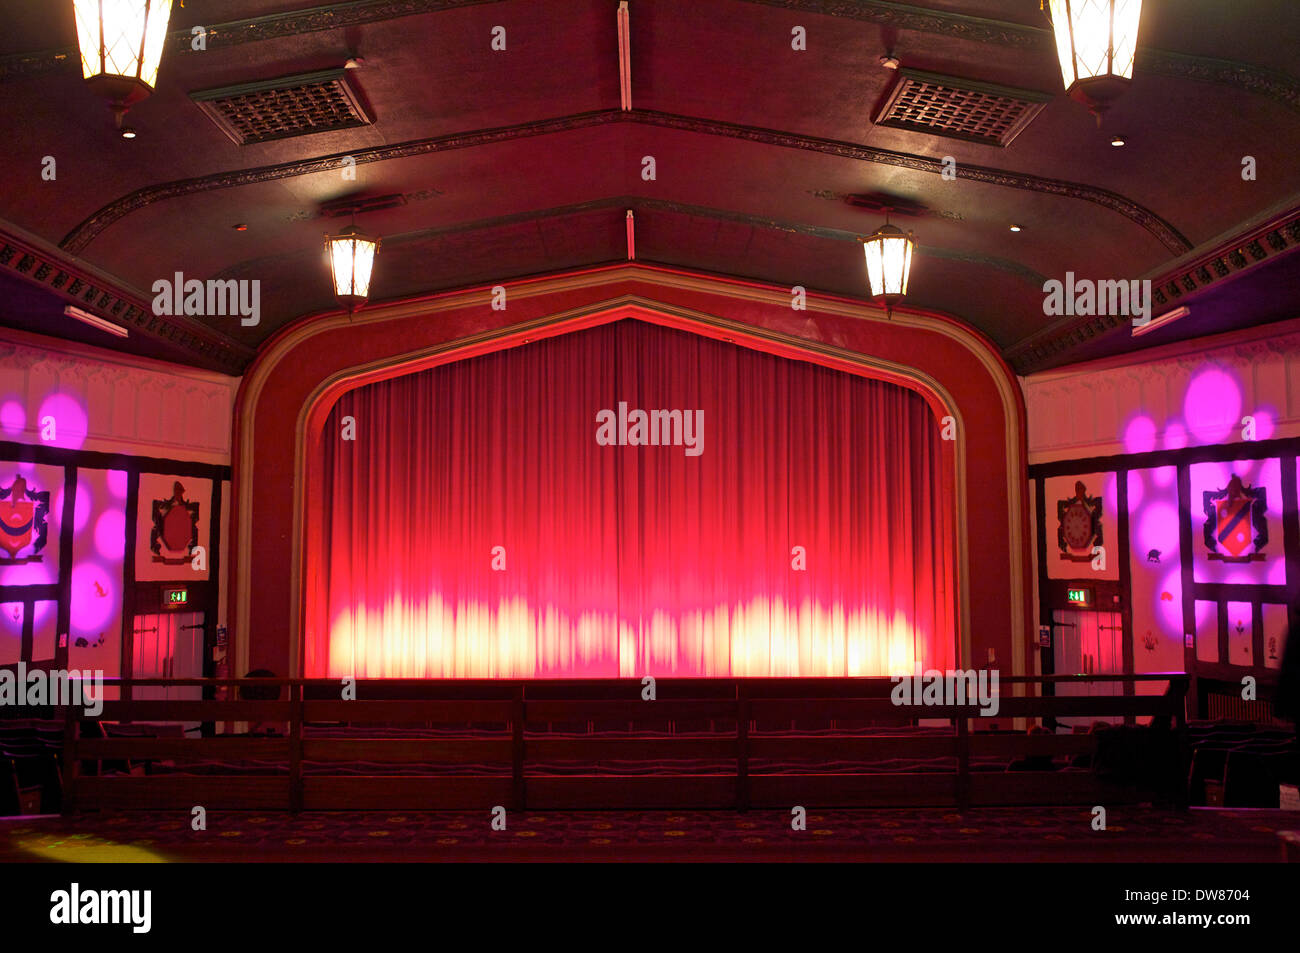 Stock photo dramatic red old fashioned elegant theater stage stock - An Old Fashioned Cinema At Faversham Stock Image